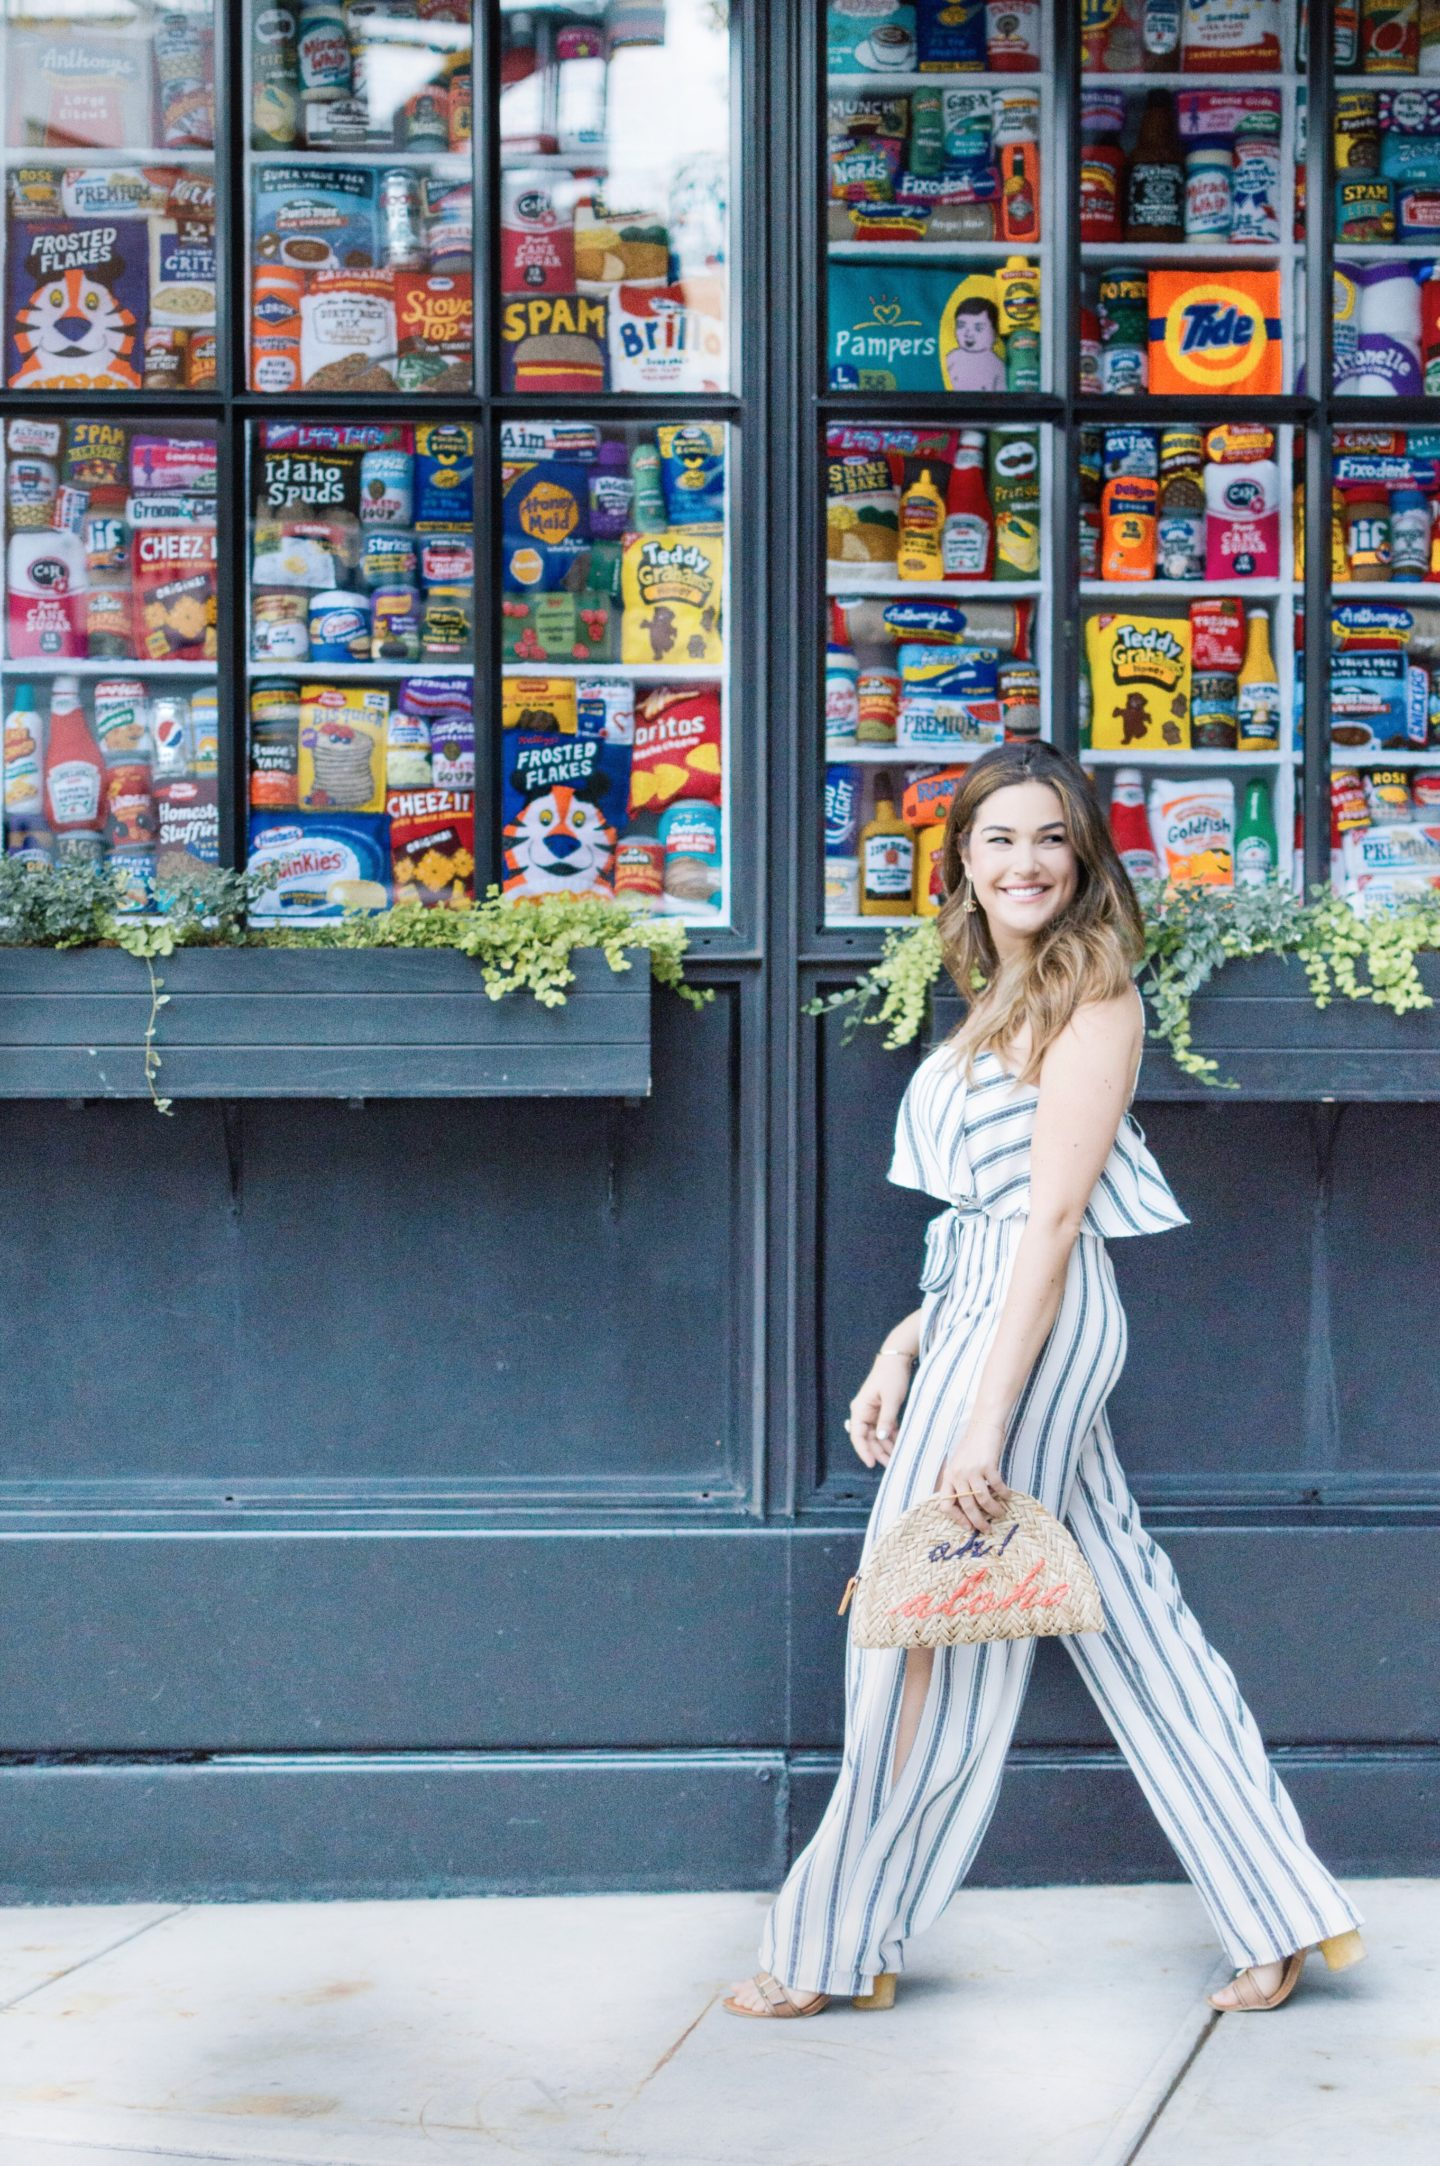 Get the Look: Stripes for July 4th